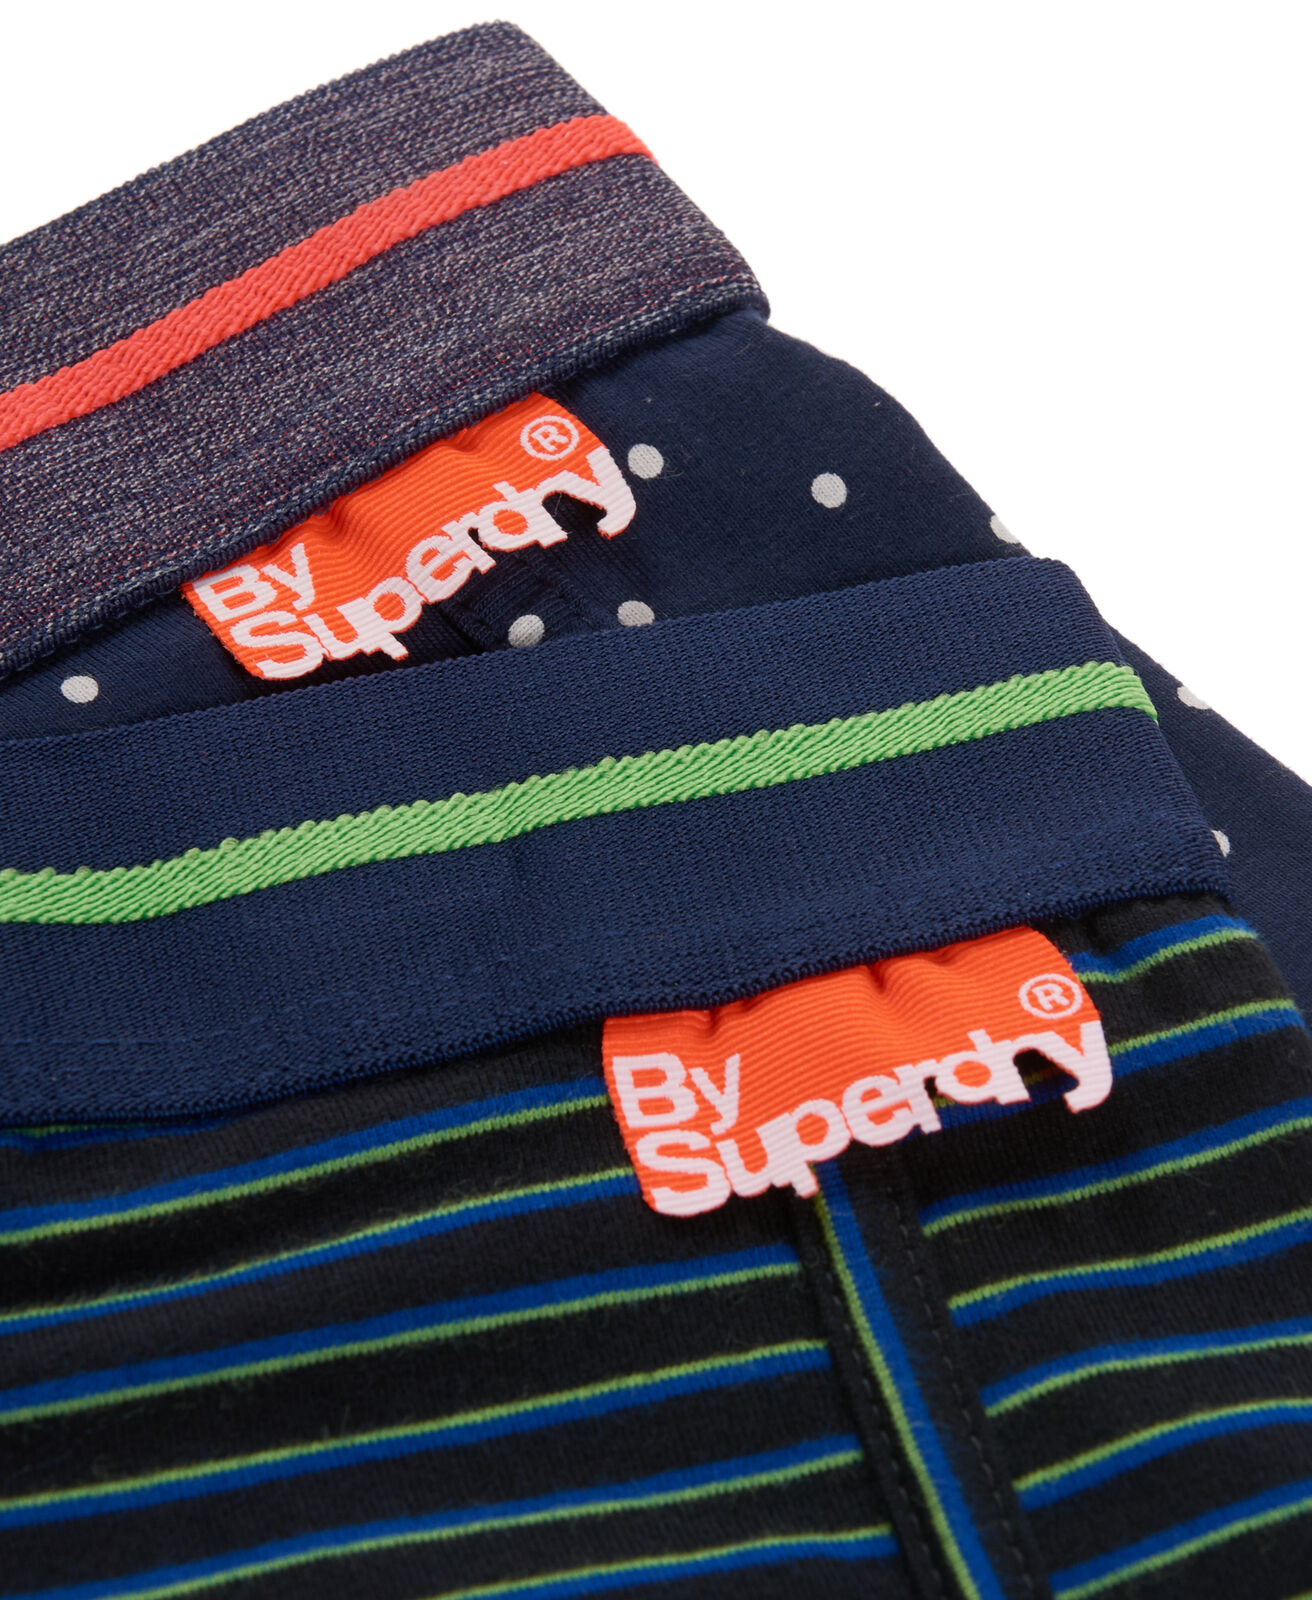 Mens-Superdry-Sport-Boxers-Double-Pack-Newport-Stripe-Green thumbnail 12